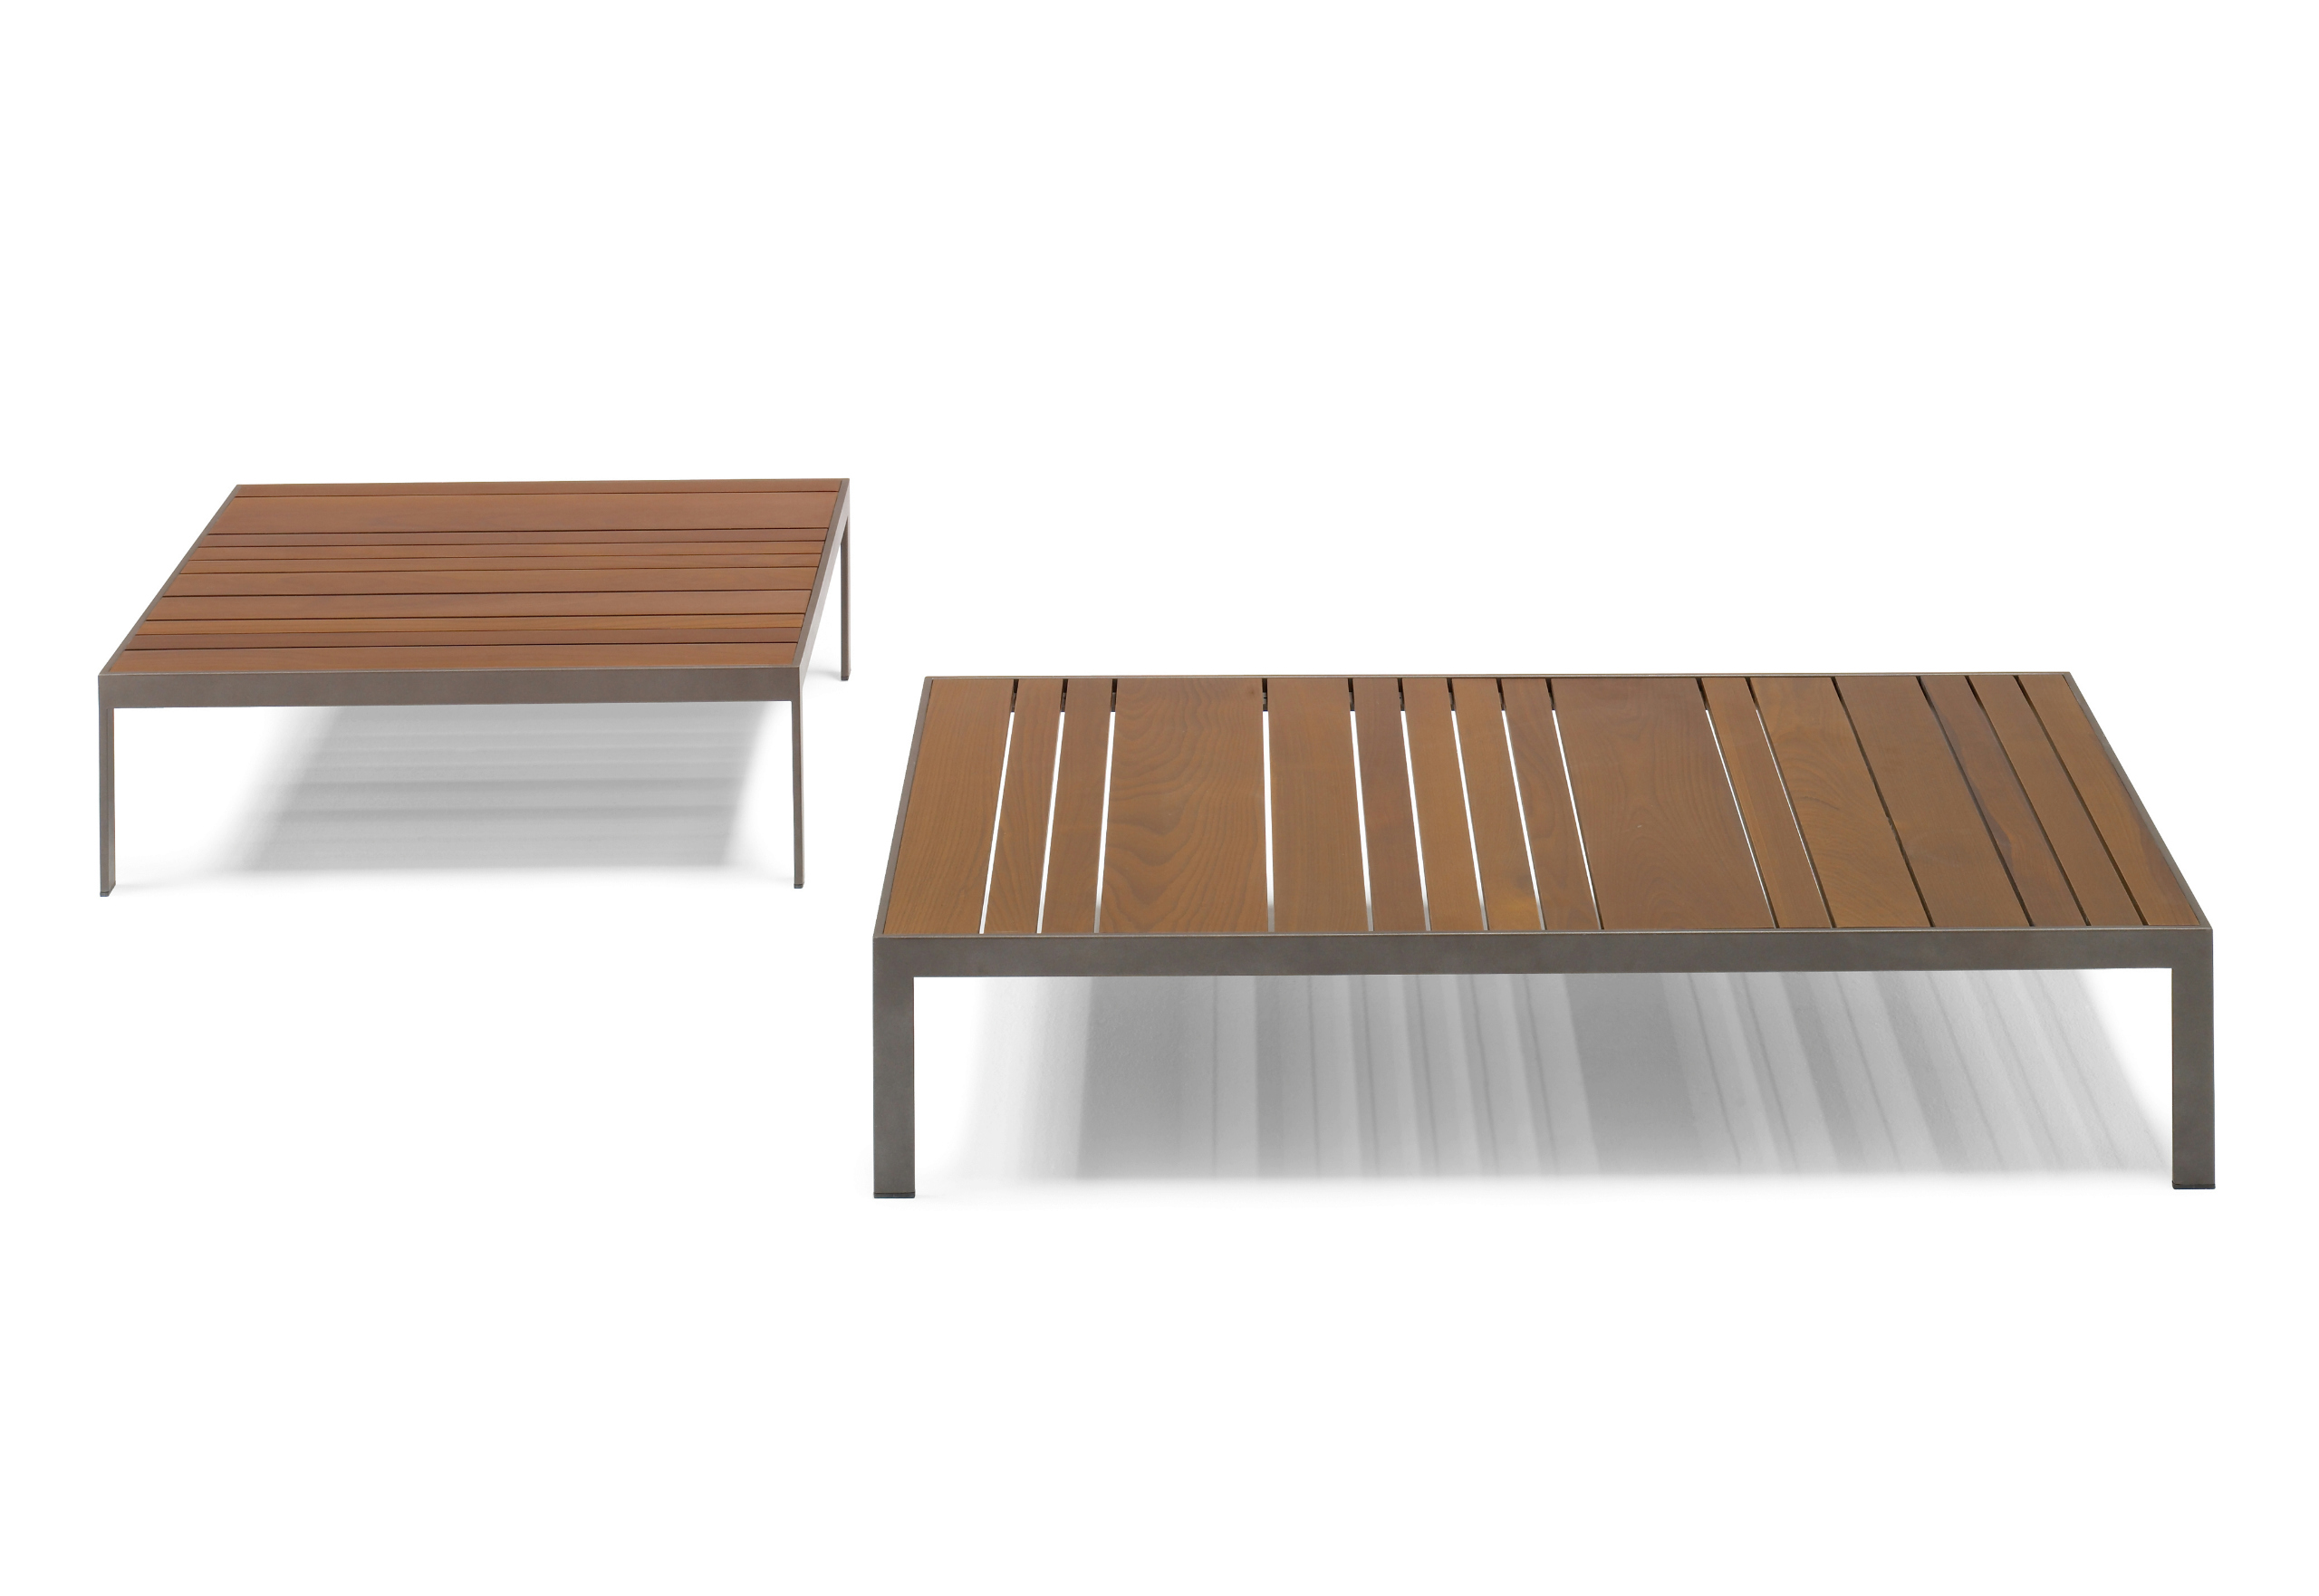 Sand square coffee table by andreu world design lievore altherr molina Low coffee table square